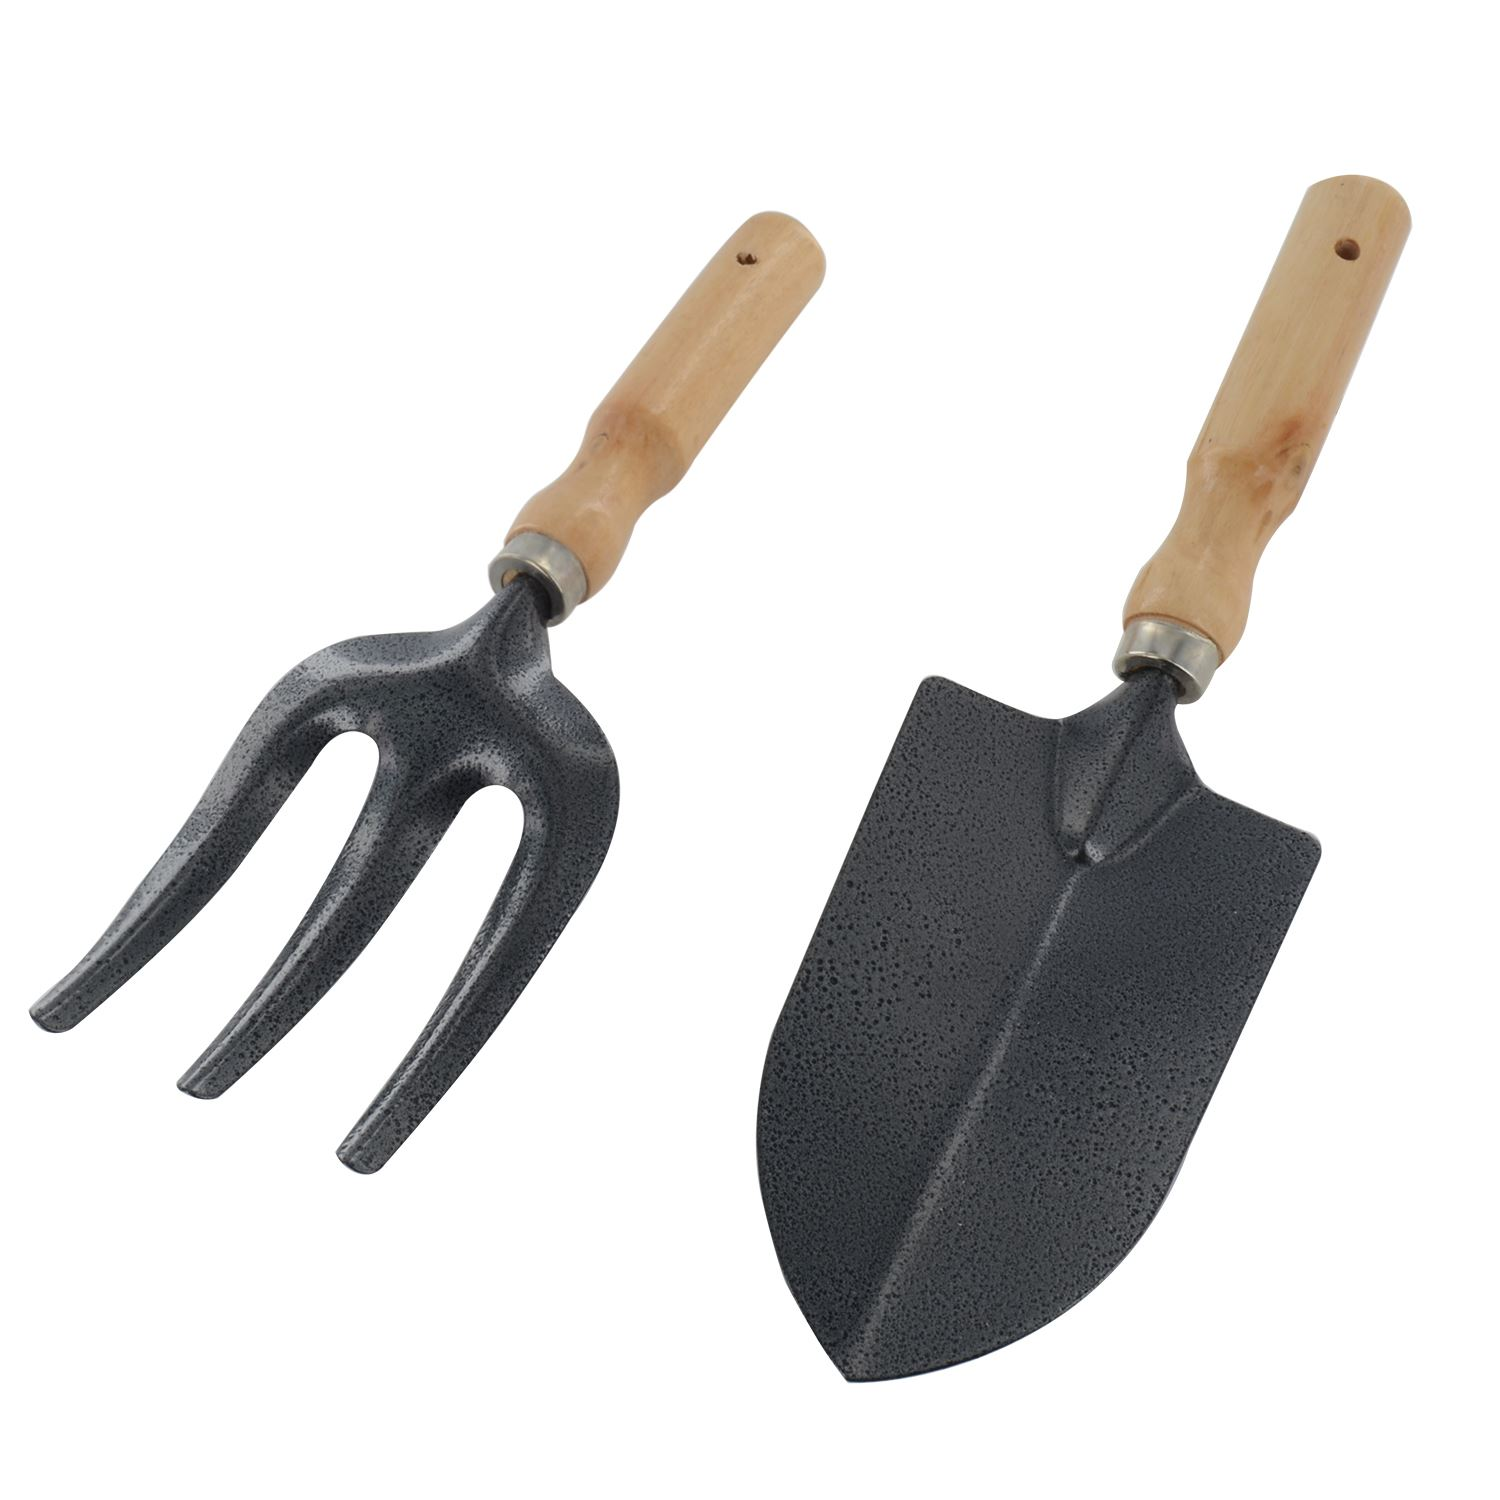 Garden trowel hand fork tool gardening potting weeding for Ladies small garden fork